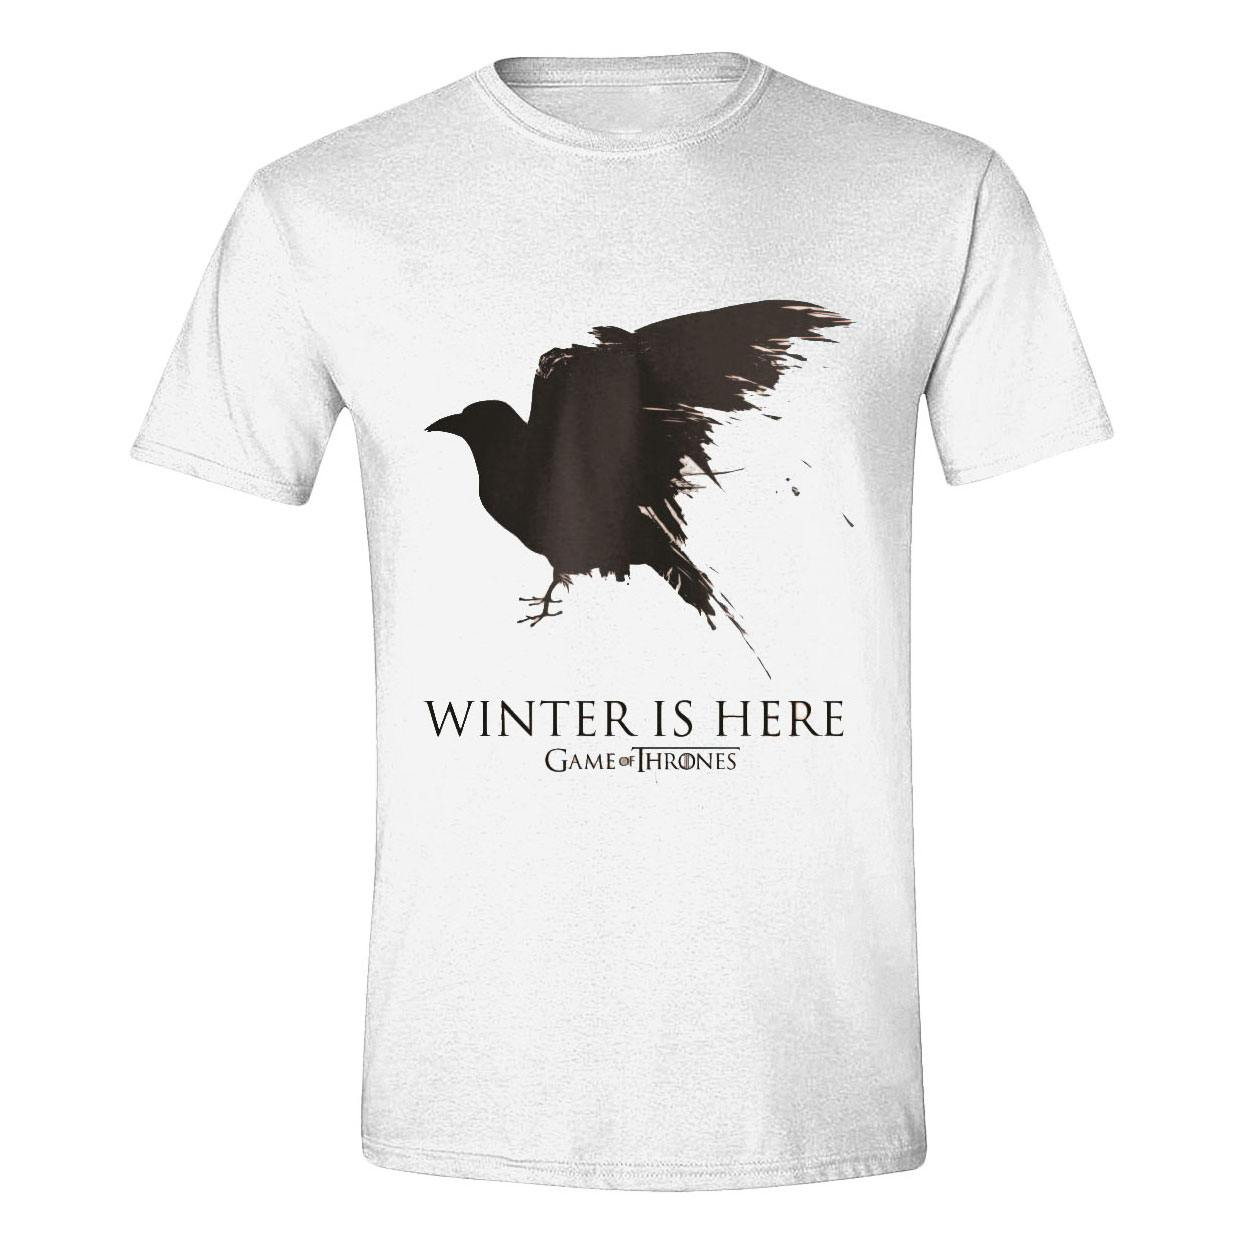 Game of Thrones T-Shirt Winter is here Size S